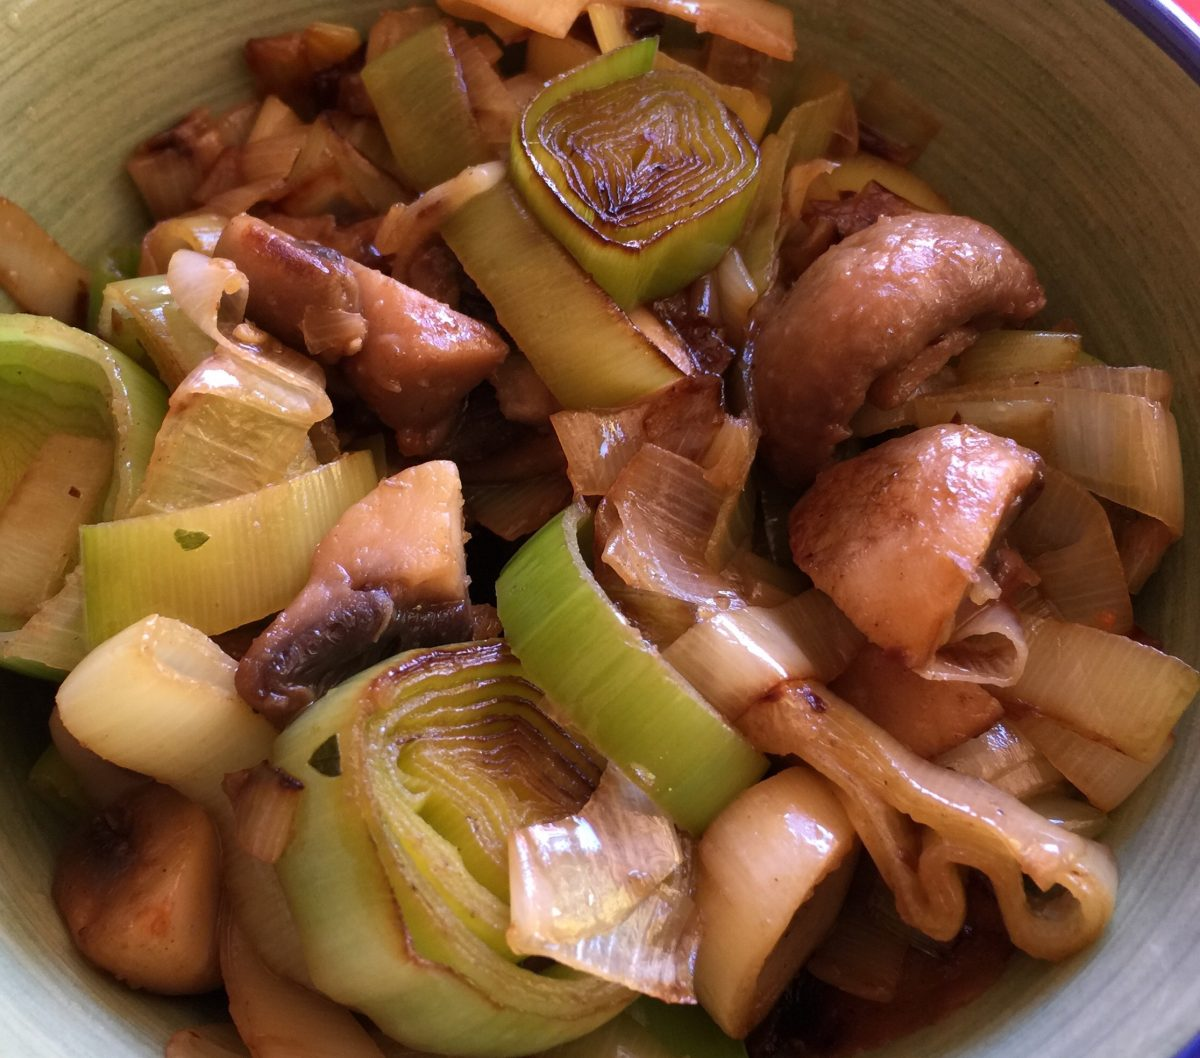 Leeks, button mushrooms, white wine, stock, onion powder, chill powder by cooking meals for one